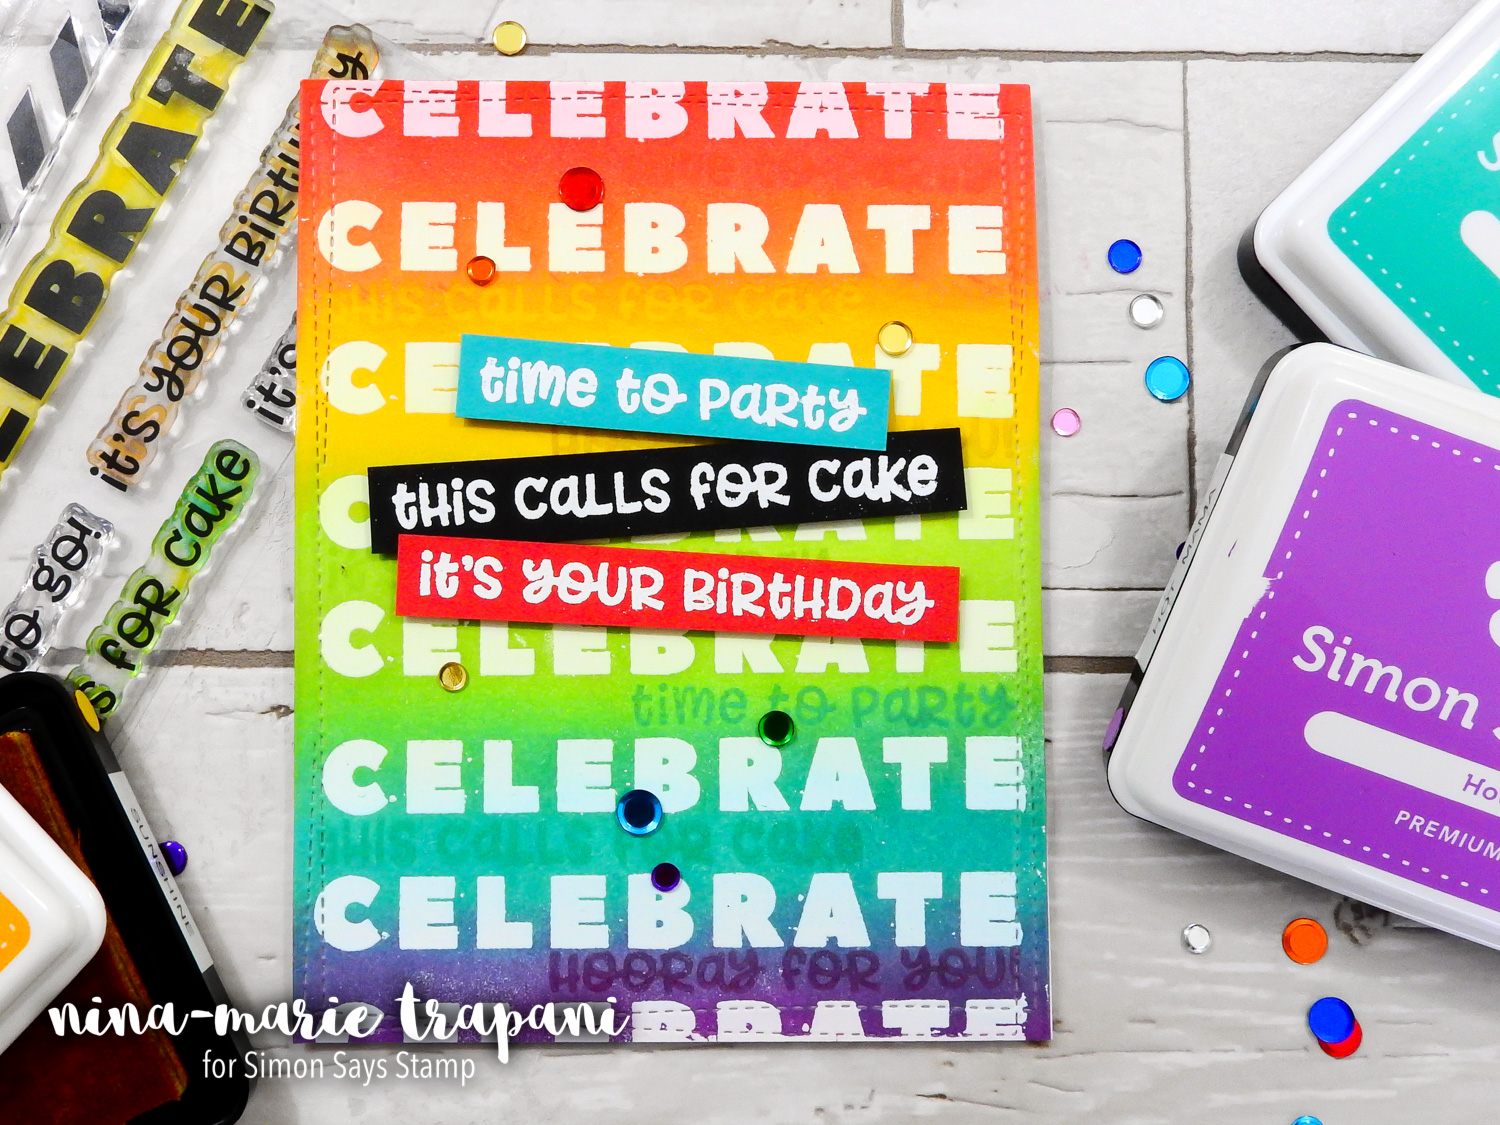 Emboss Resist with Aqua Flow Pens + Simon's November CZ Design Release | Nina-Marie Design